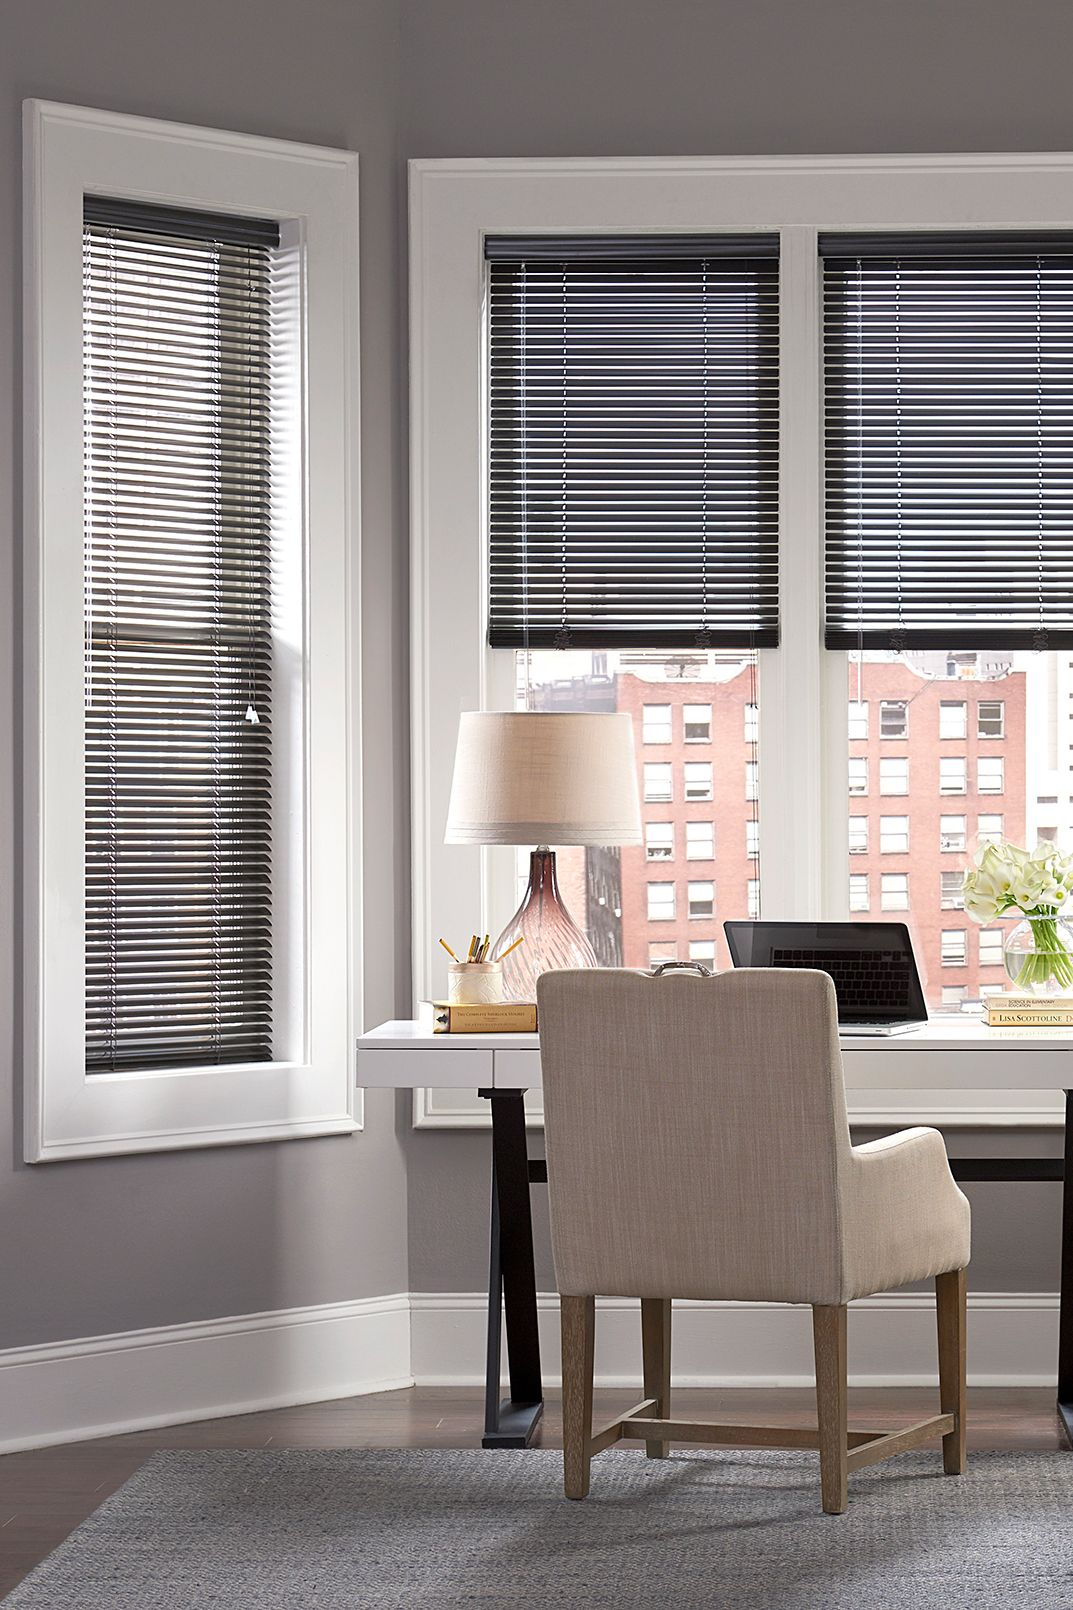 The Ultimate Guide To Blinds For Bay Windows Blinds Com Living Room Blinds Blinds For Windows Living Room Windows